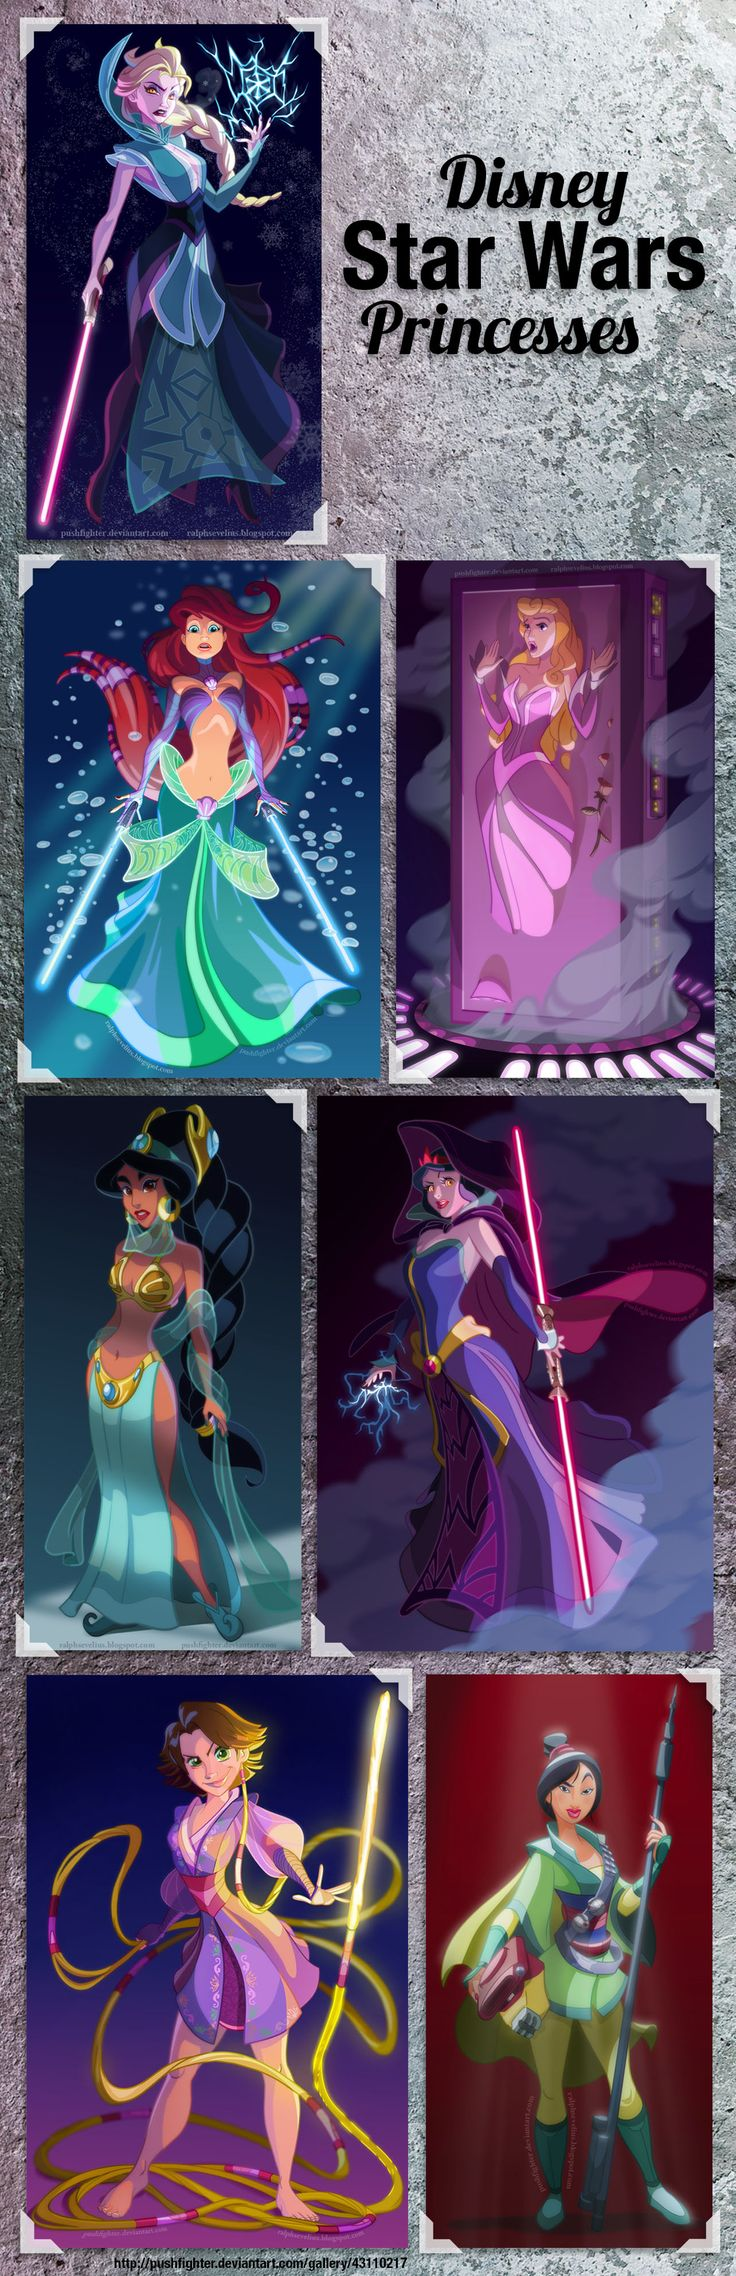 [Disney Star Wars Princesses] - artwork from http://pushfighter.deviantart.com/gallery/43110217